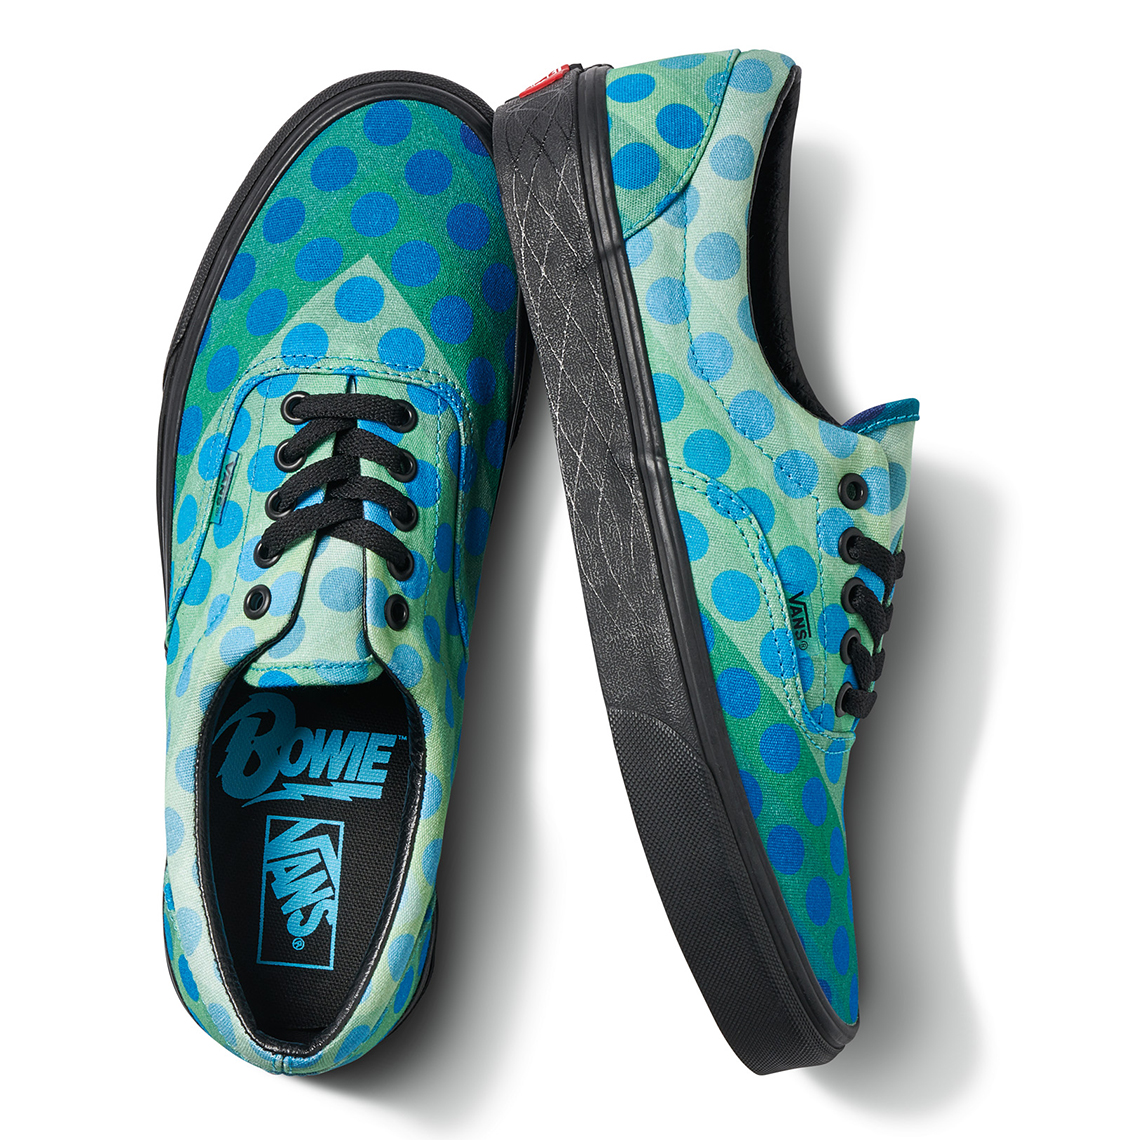 David Bowie Vans Collection Release Info Sneakernews Com